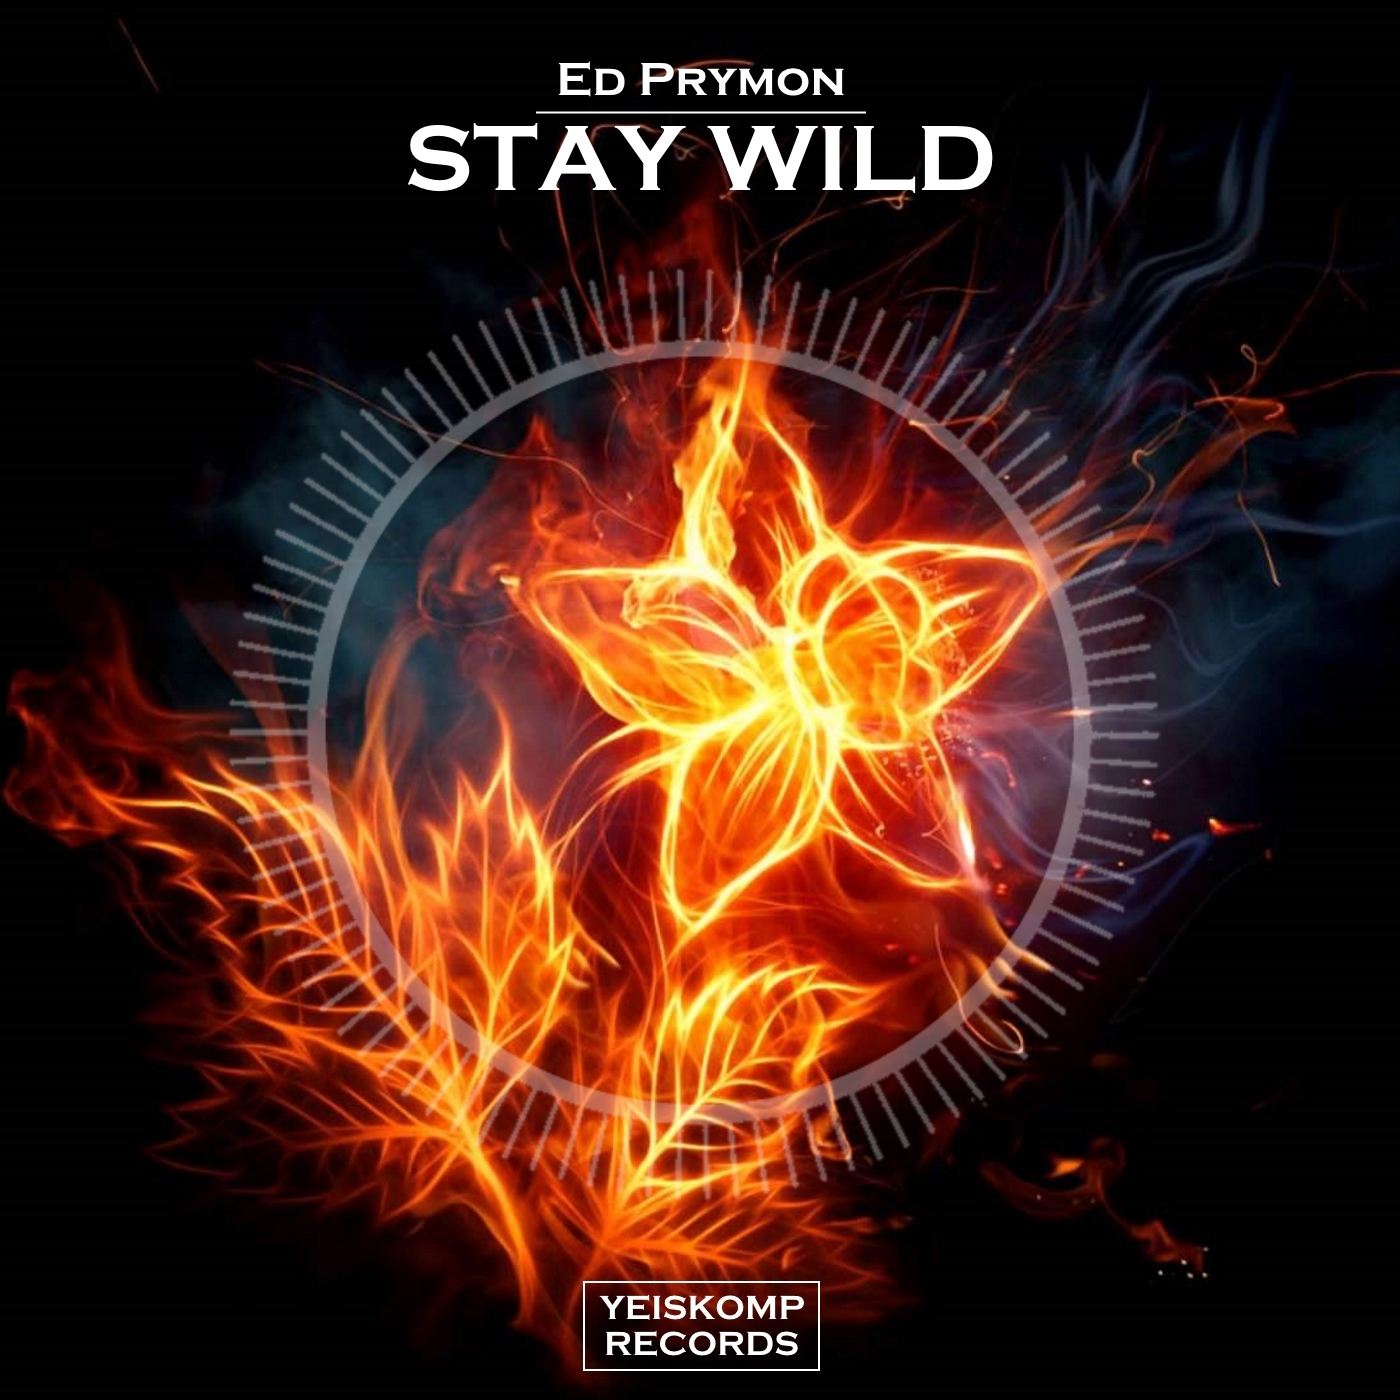 Ed Prymon - Stay Wild (Original Mix)